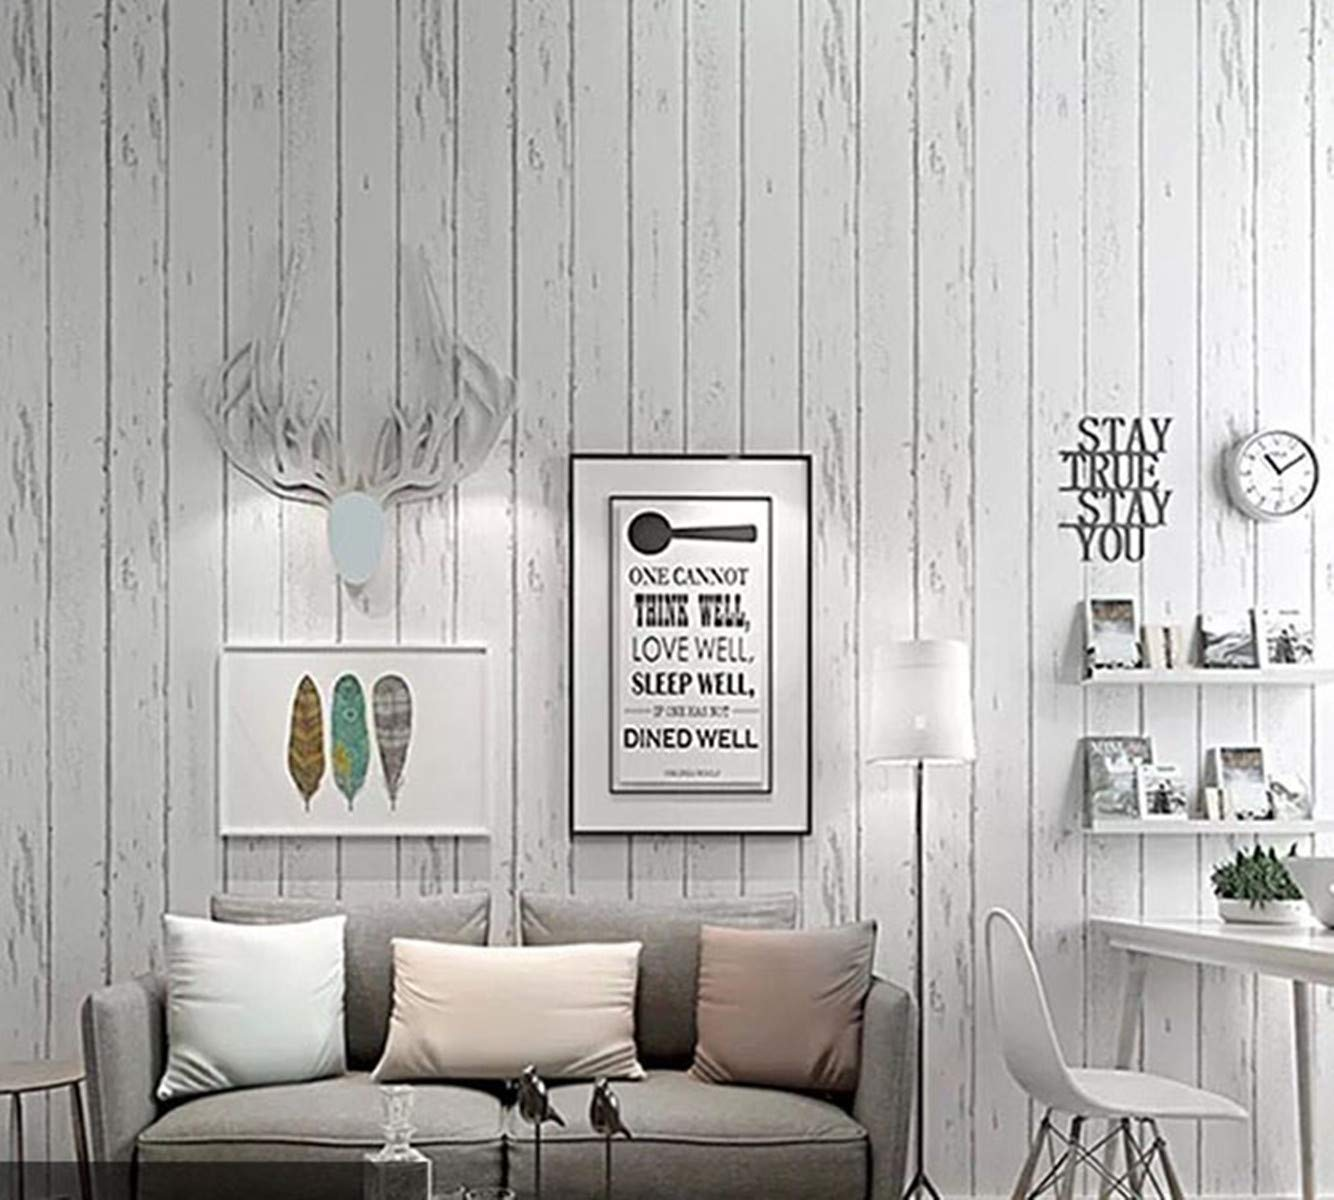 Furniture Stickers Home Kitchen White Wood Contact Paper Self Adhesive Vinyl Film Pvc White Gray Wood Wallpaper Durable Kitchen Stickers Bathroom Waterproof Shelf Furniture Counter Wall Table Peel Stick 45cm 2m Stain Resistant